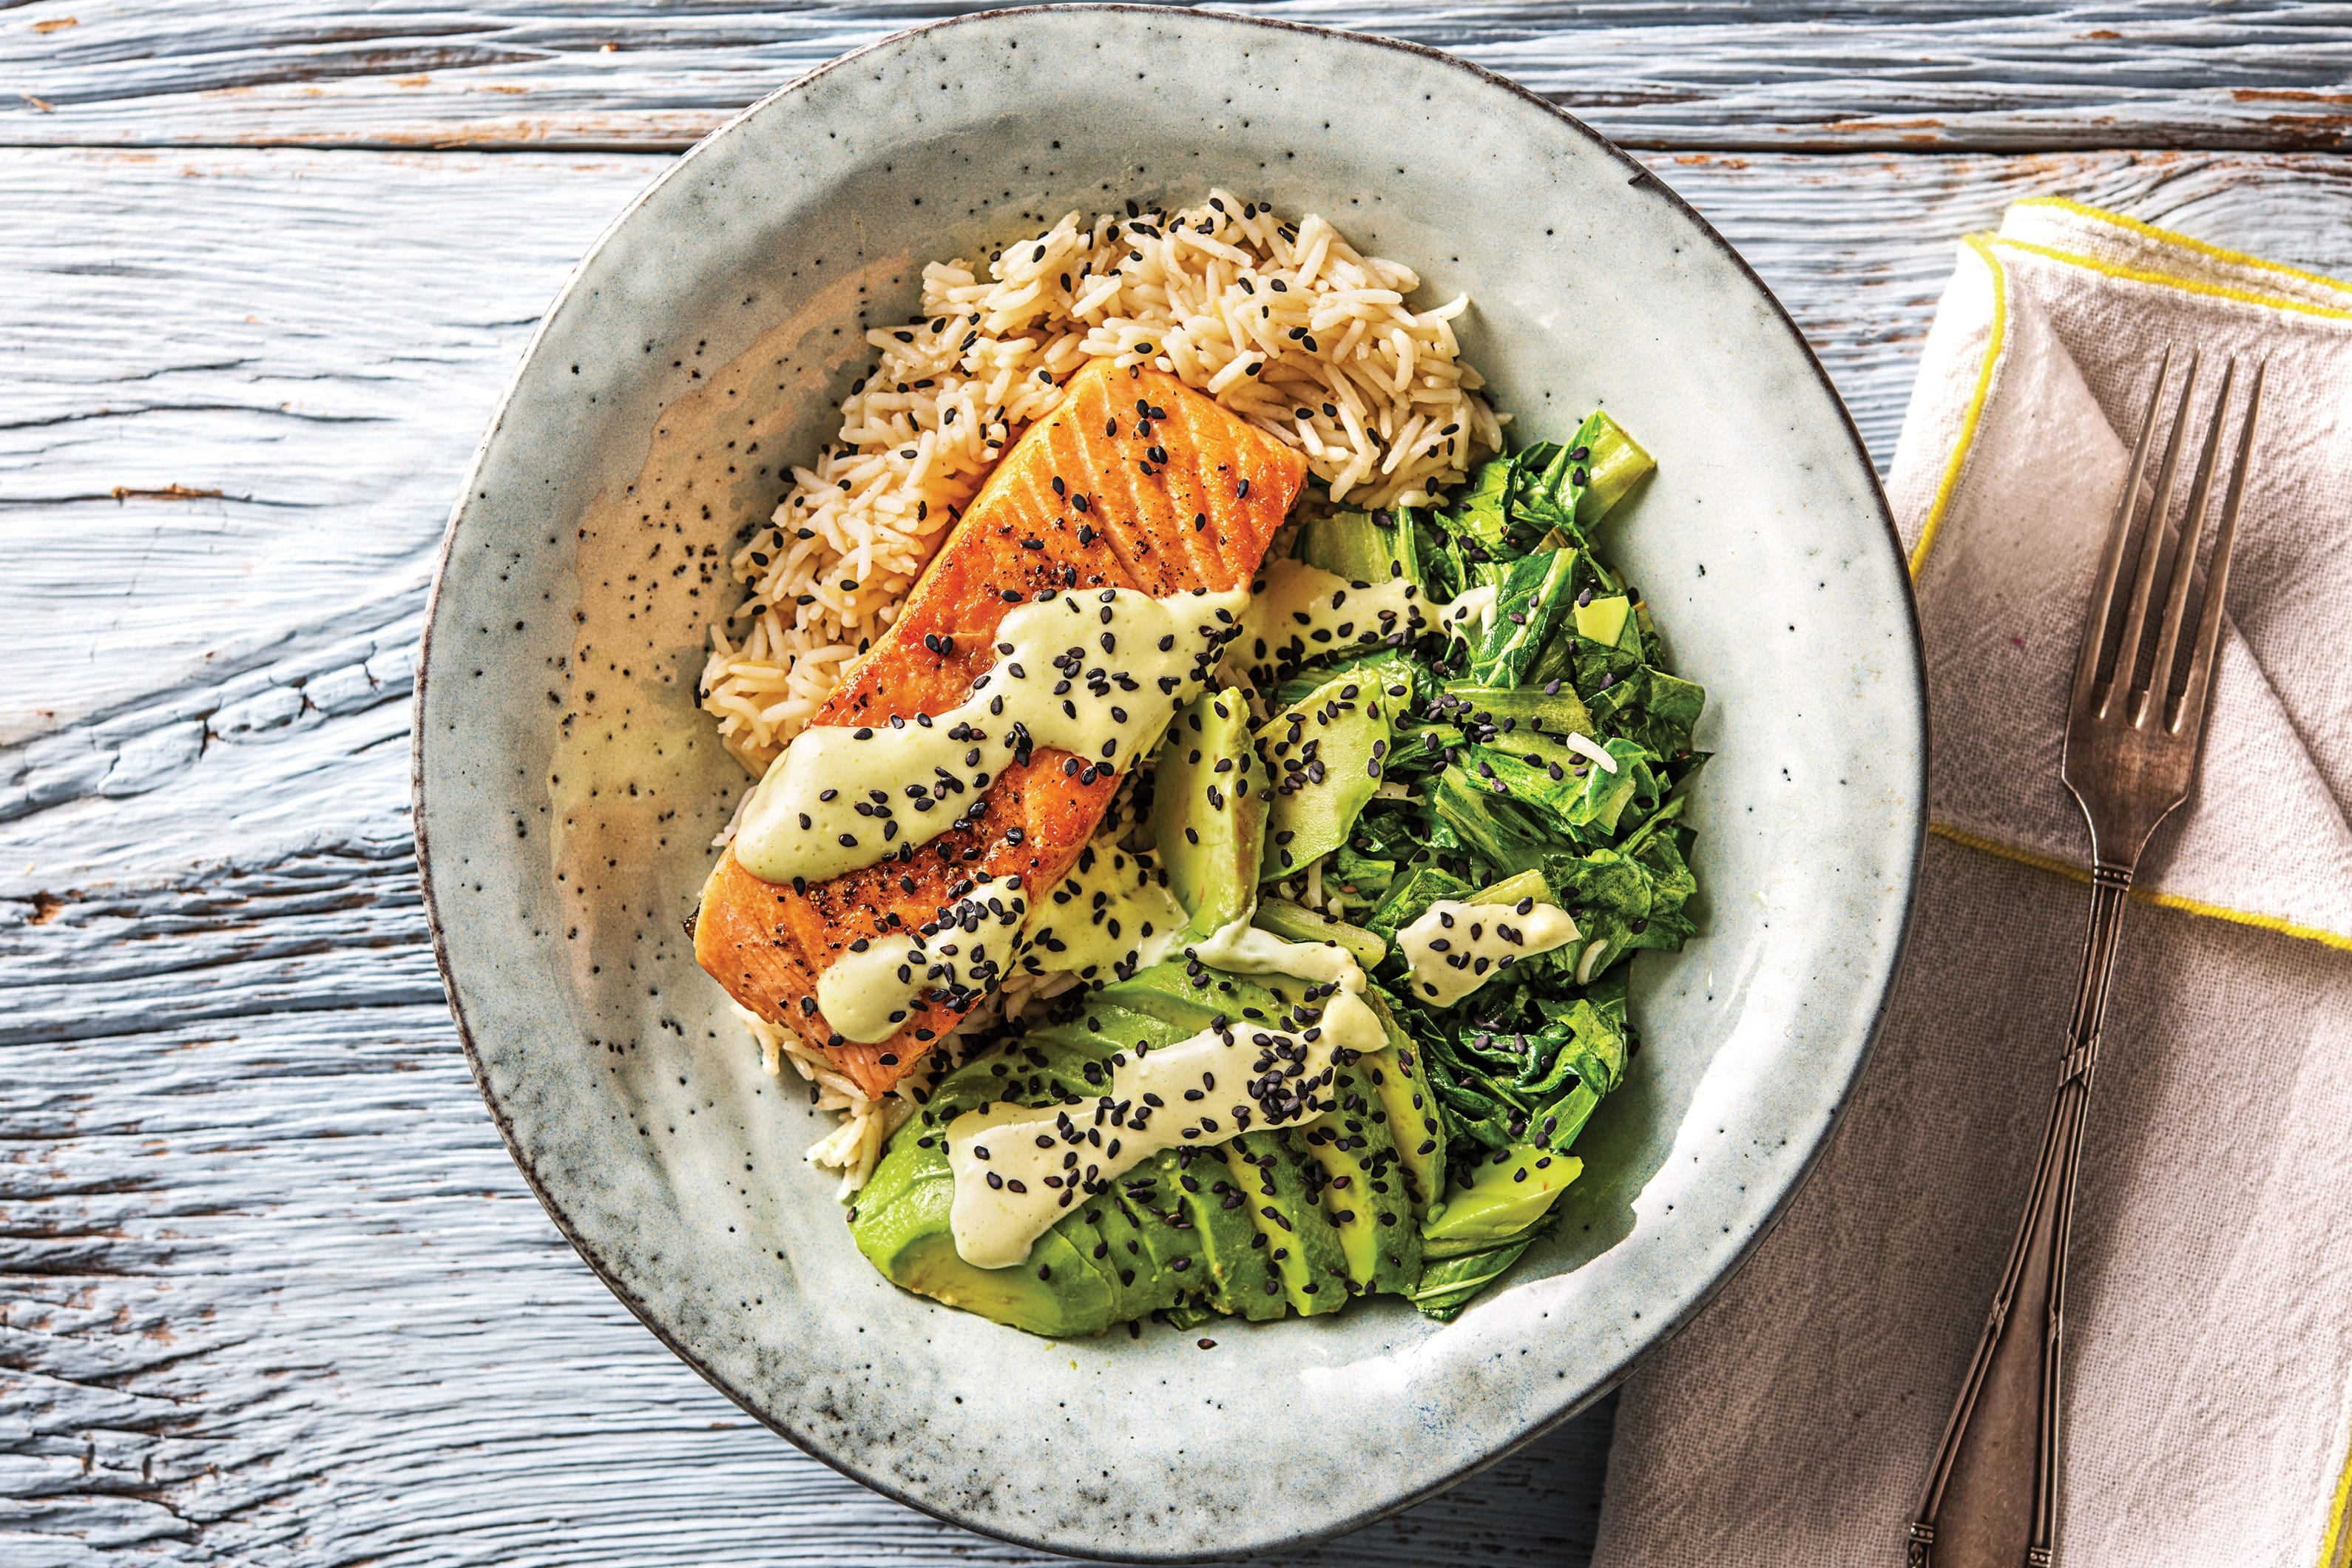 Seared Salmon 'Sushi' Bowl